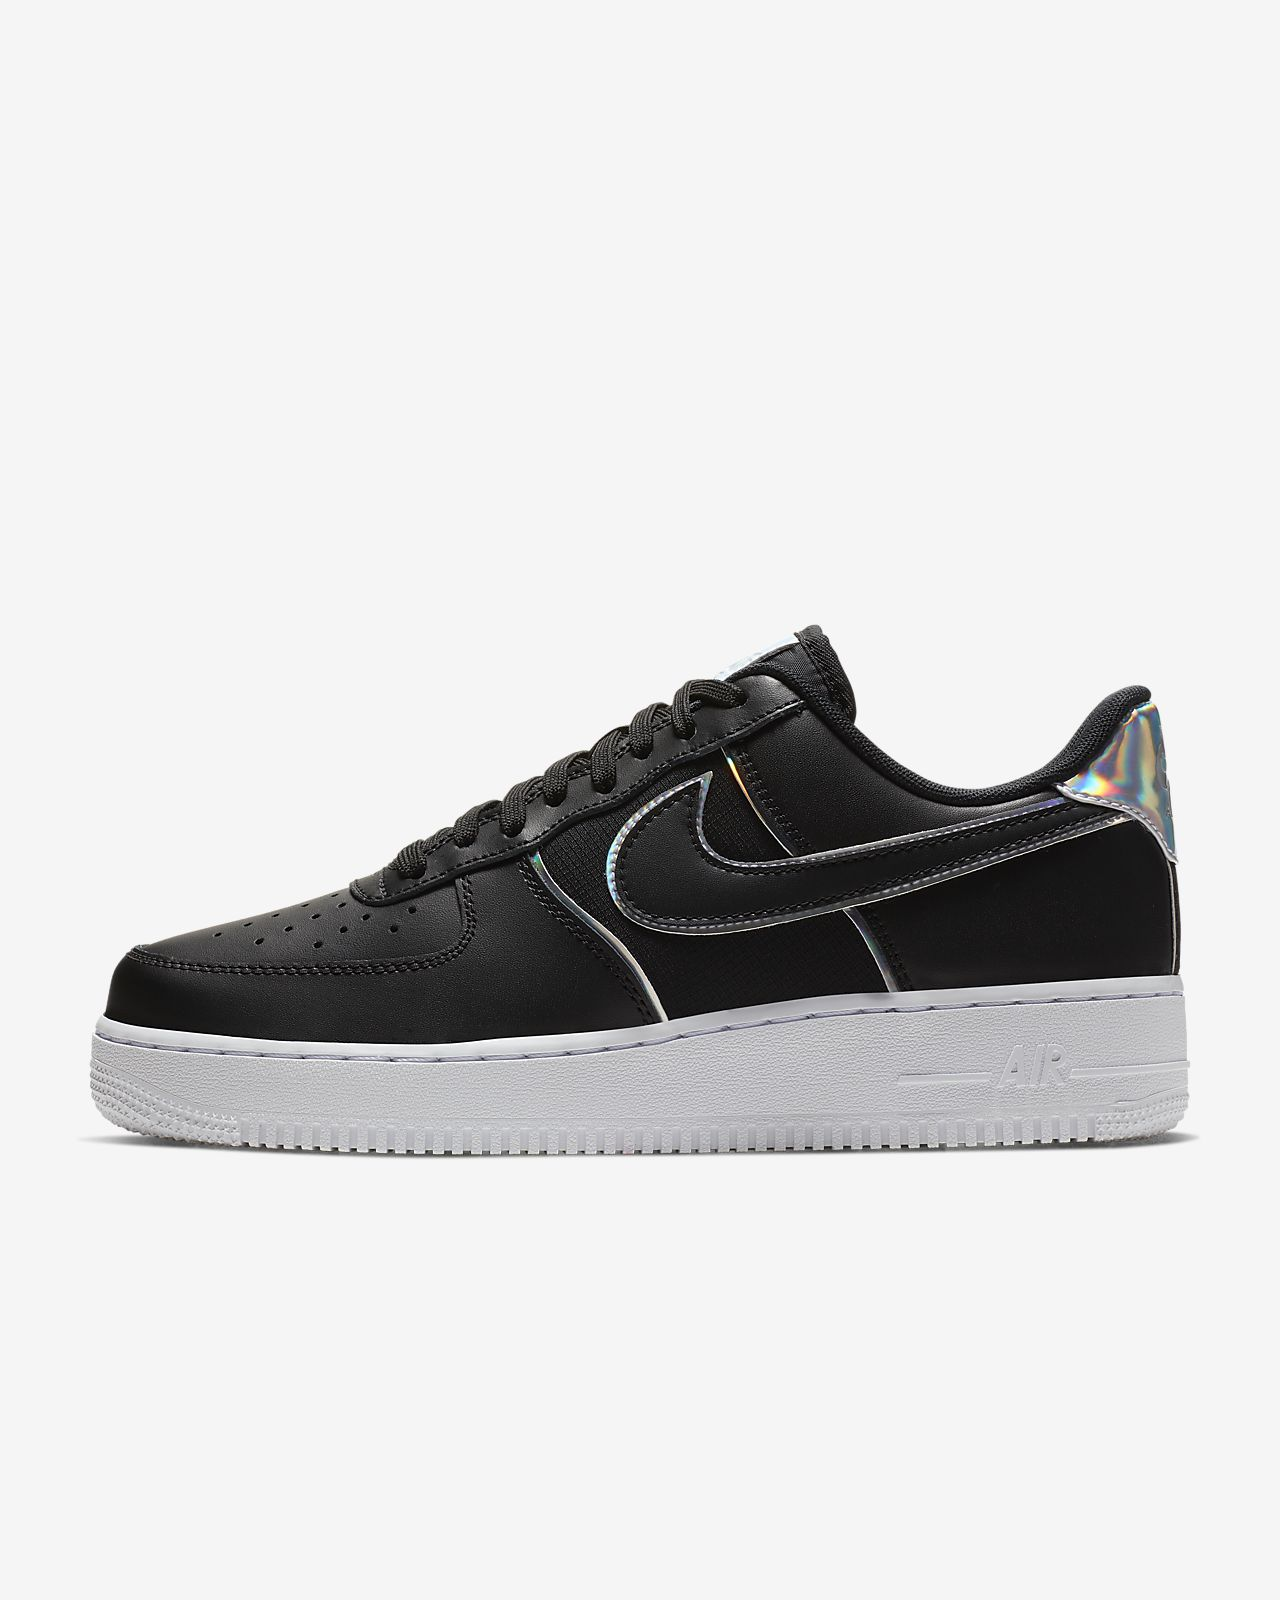 innovative design 45e01 e2e3b ... Nike Air Force 1  07 LV8 4 Men s Shoe